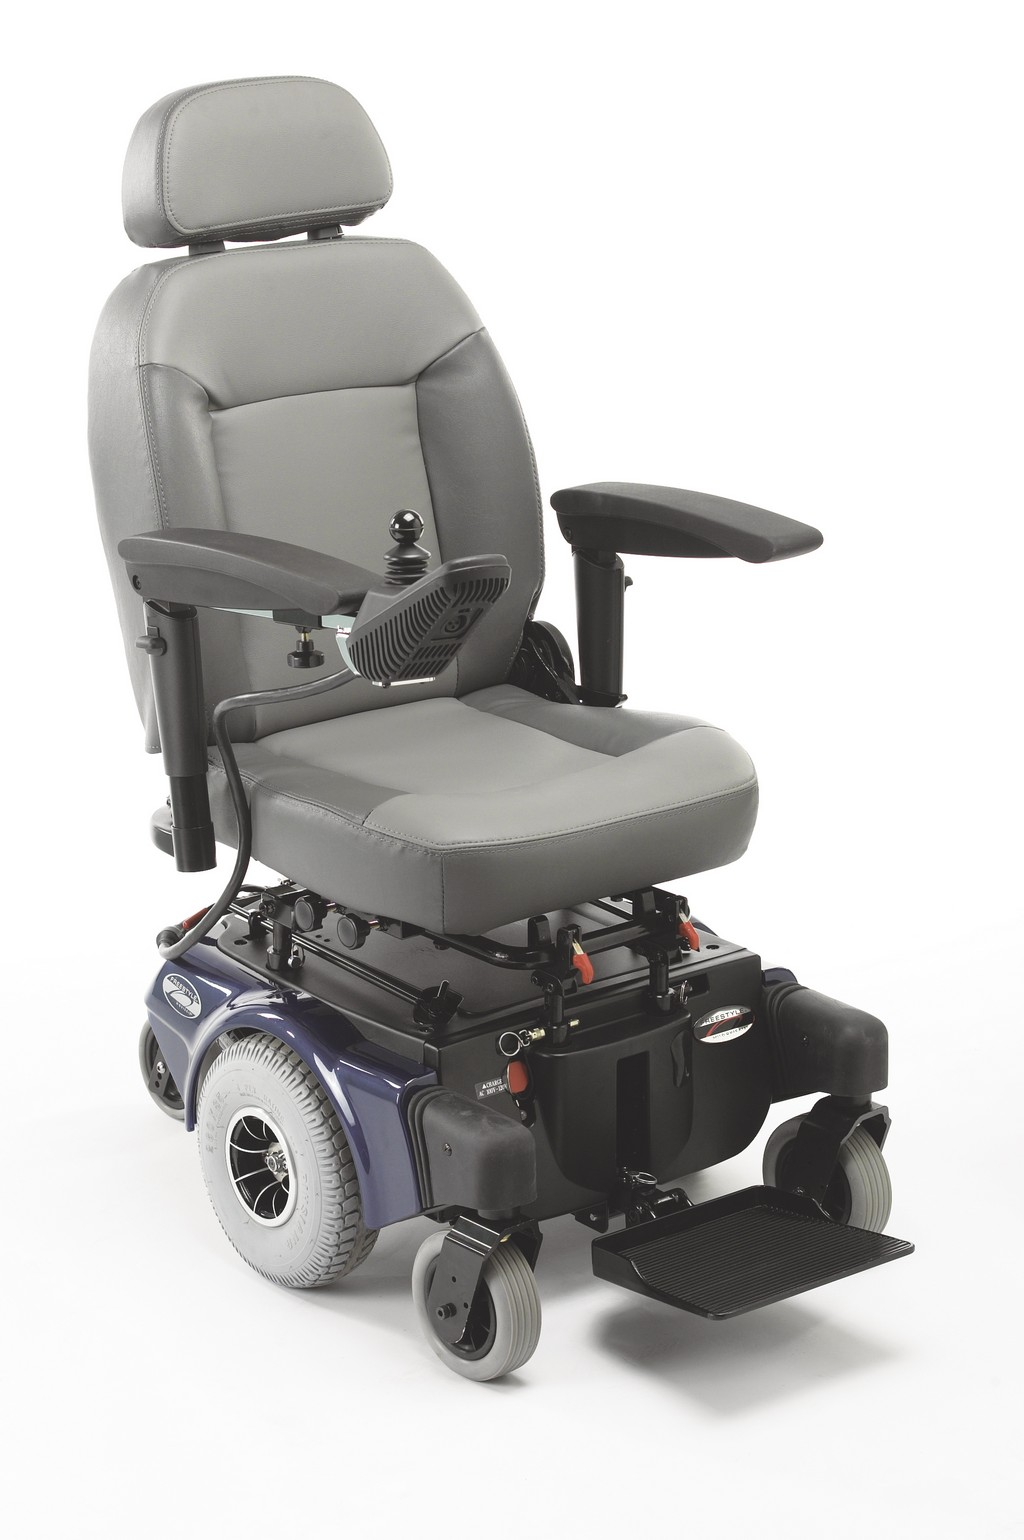 pride jazzy power wheelchair, power wheelchair parts, power wheelchair motor brushes, dalton power wheel chairs